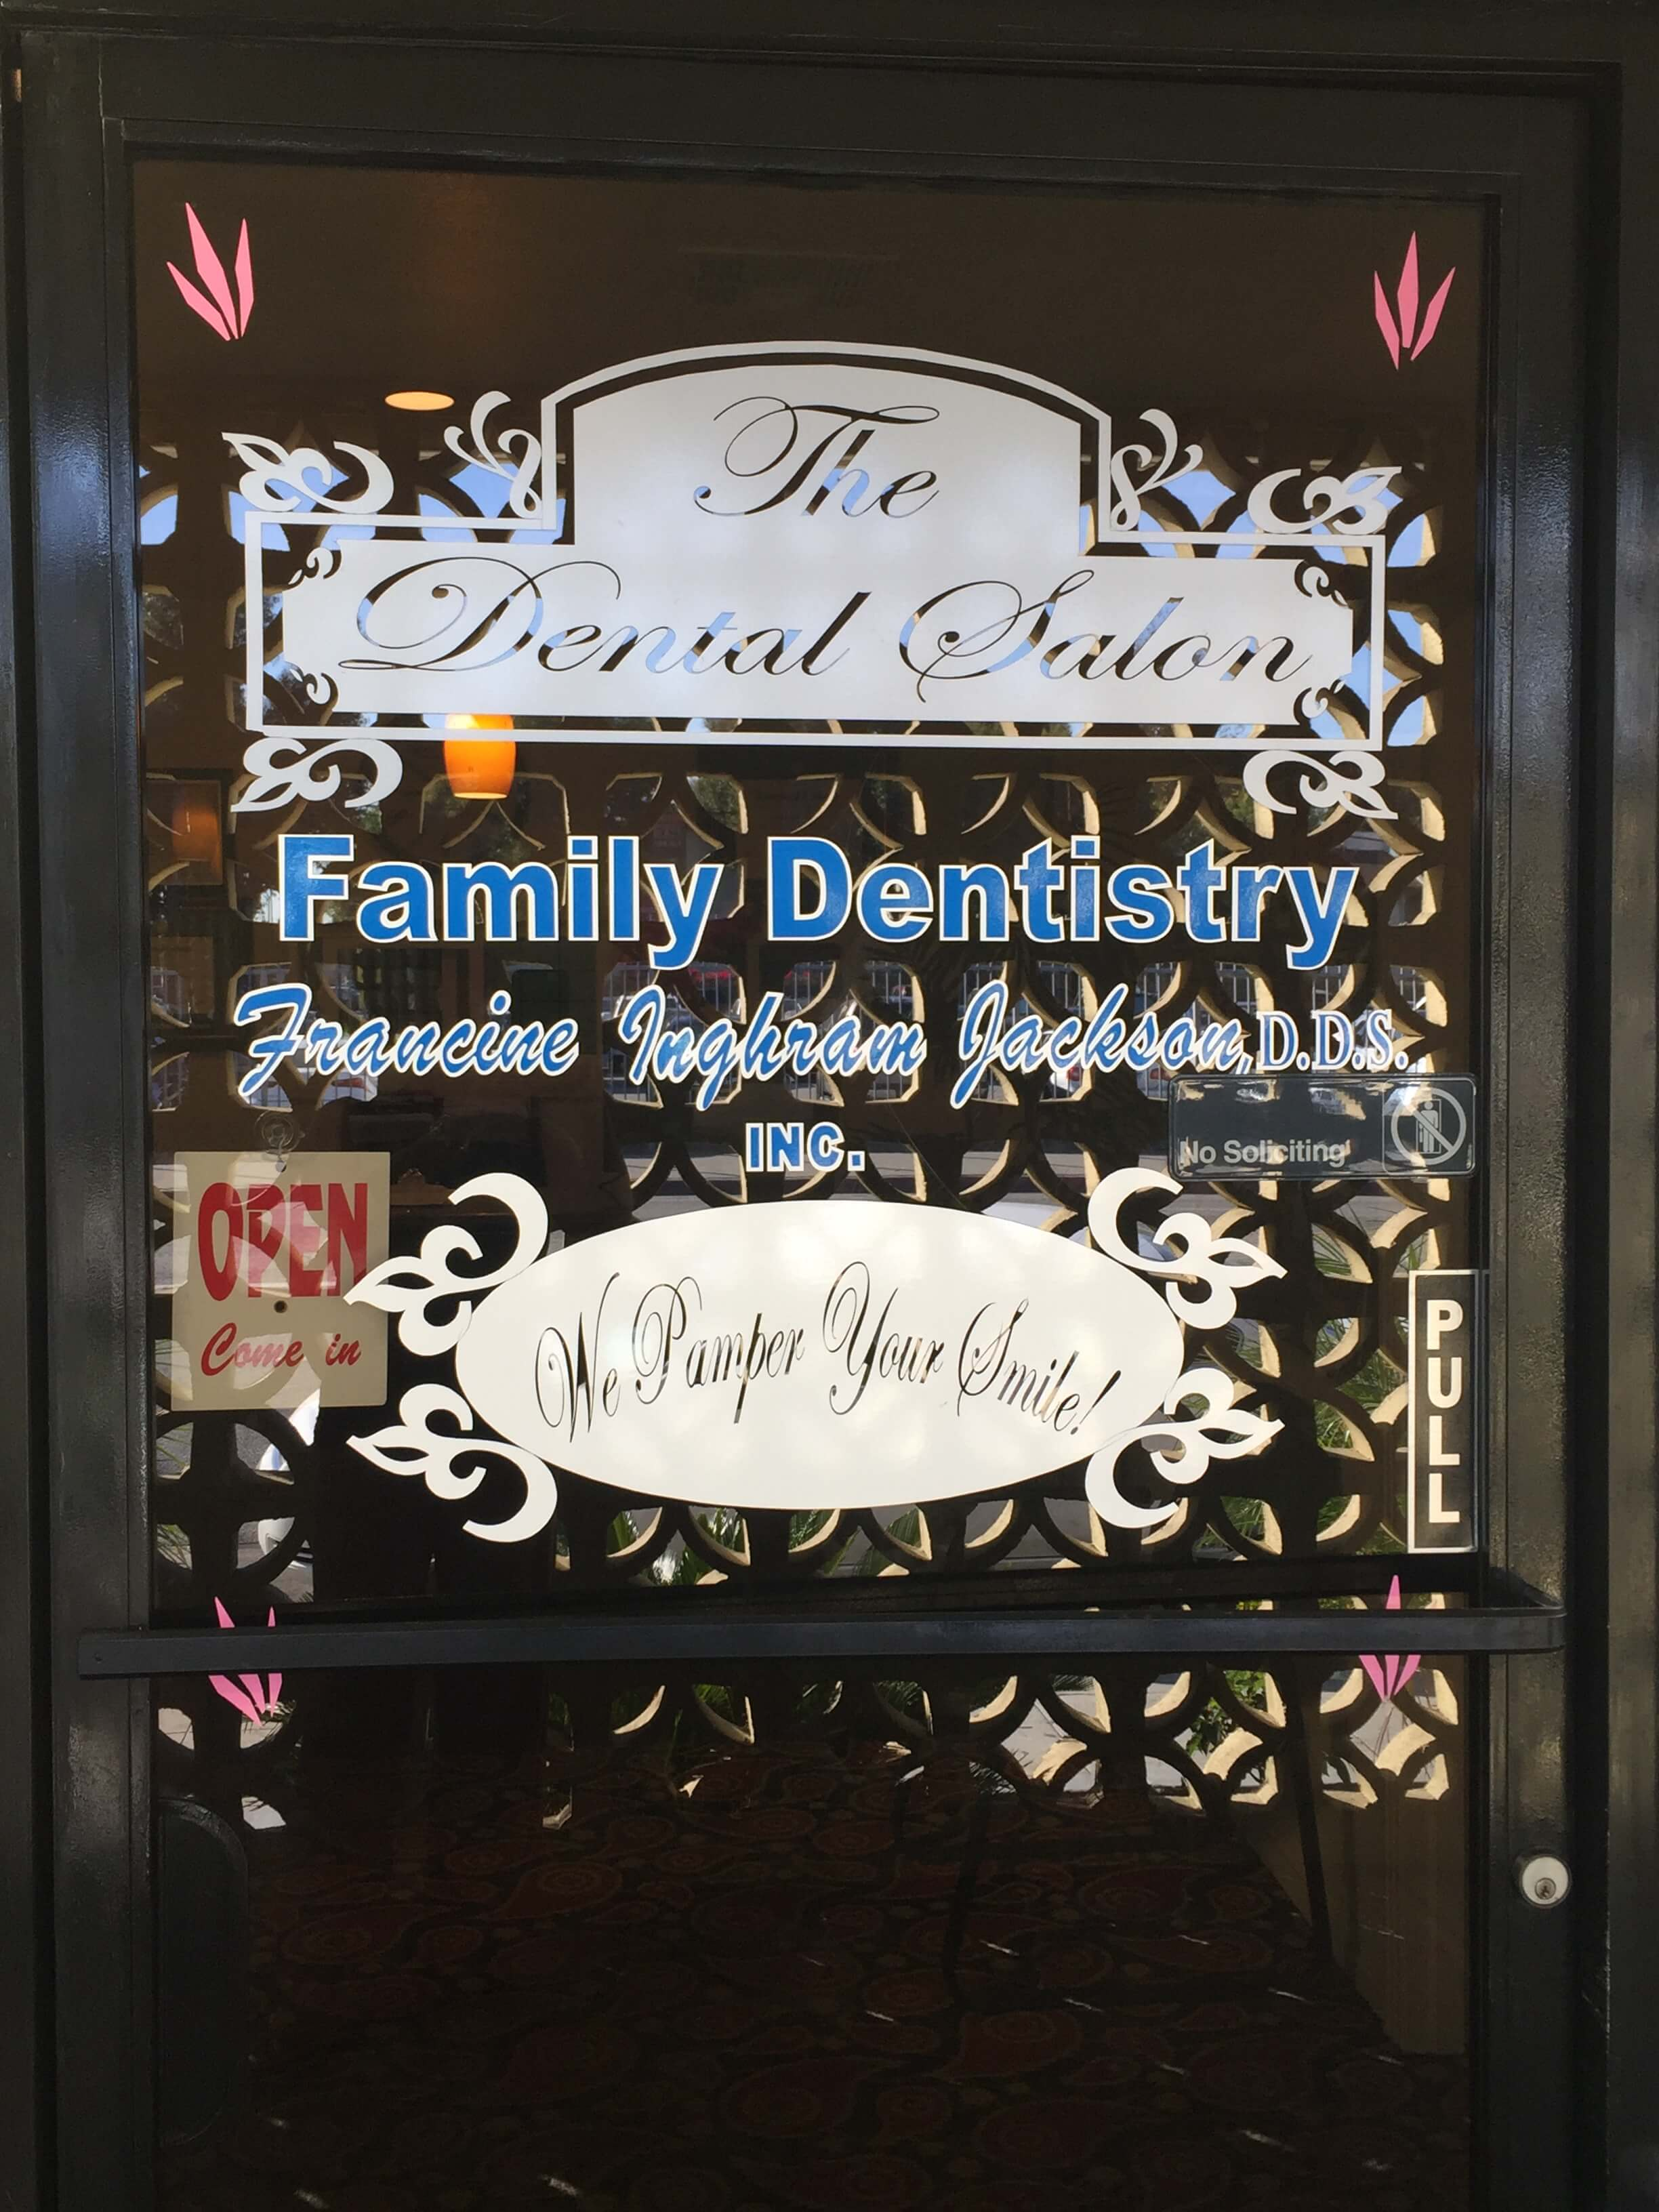 The Dental Salon